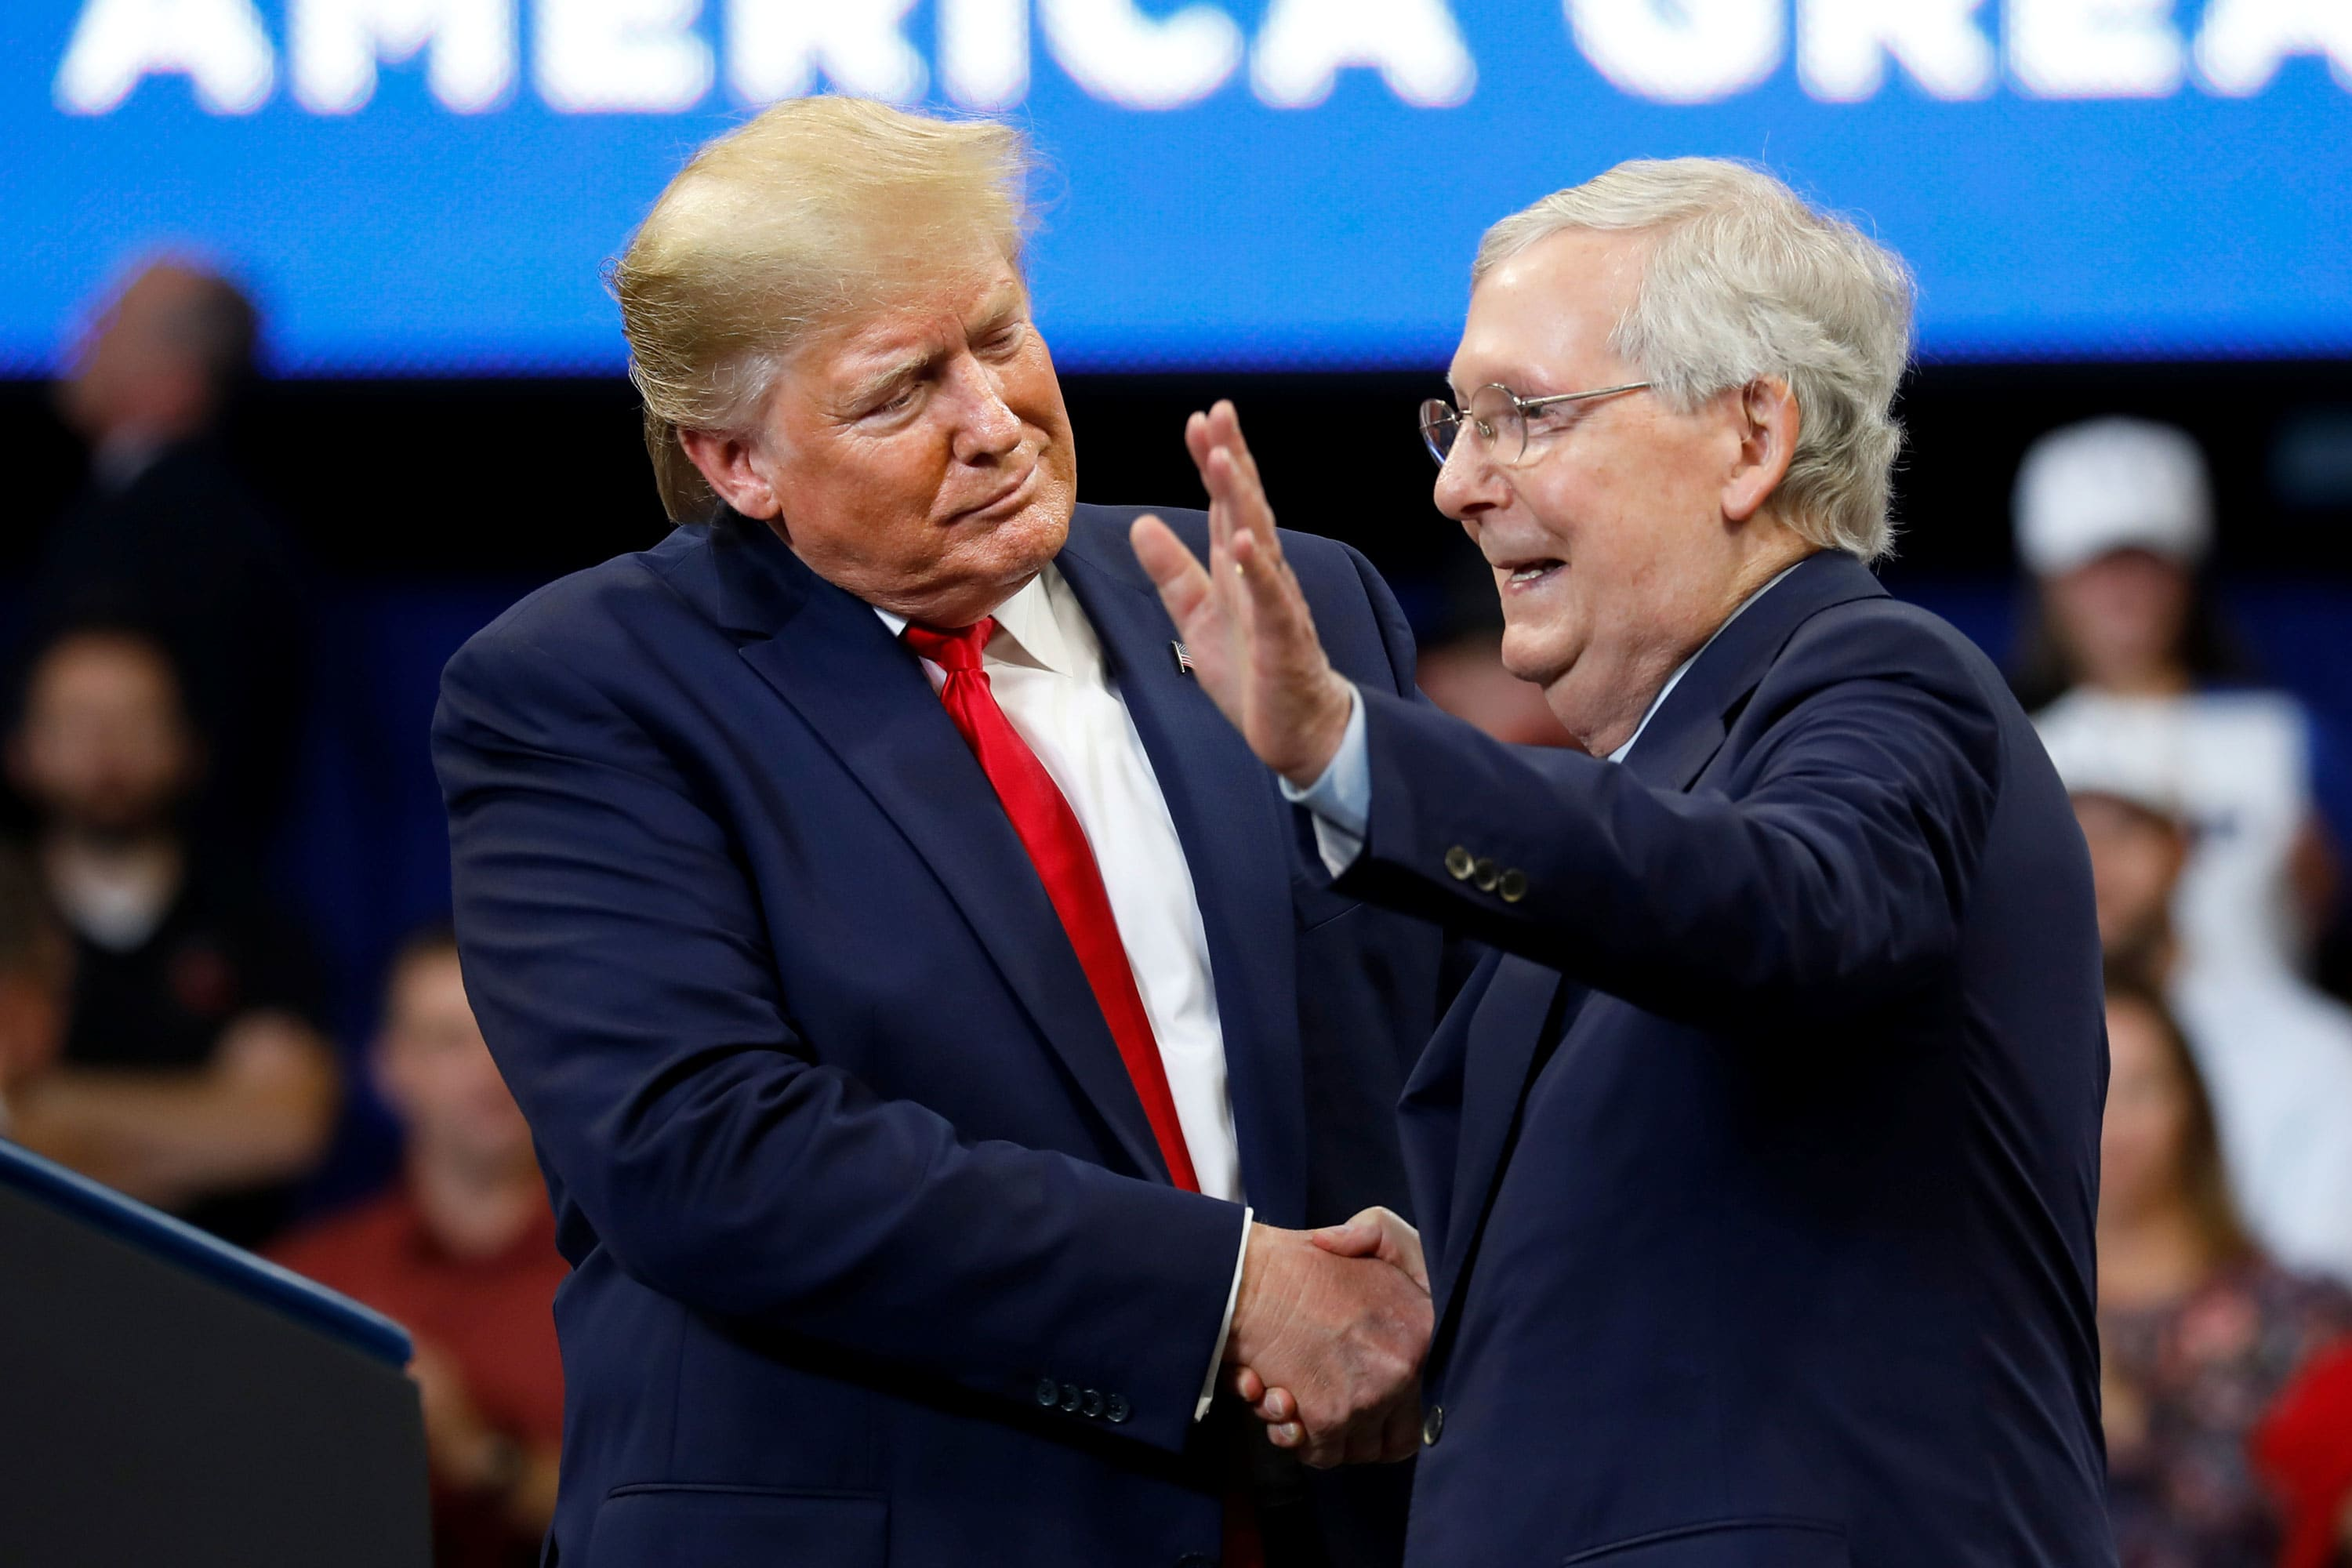 Trump aims to rally donors for McConnell-linked super PAC as GOP fights to hold Senate majority